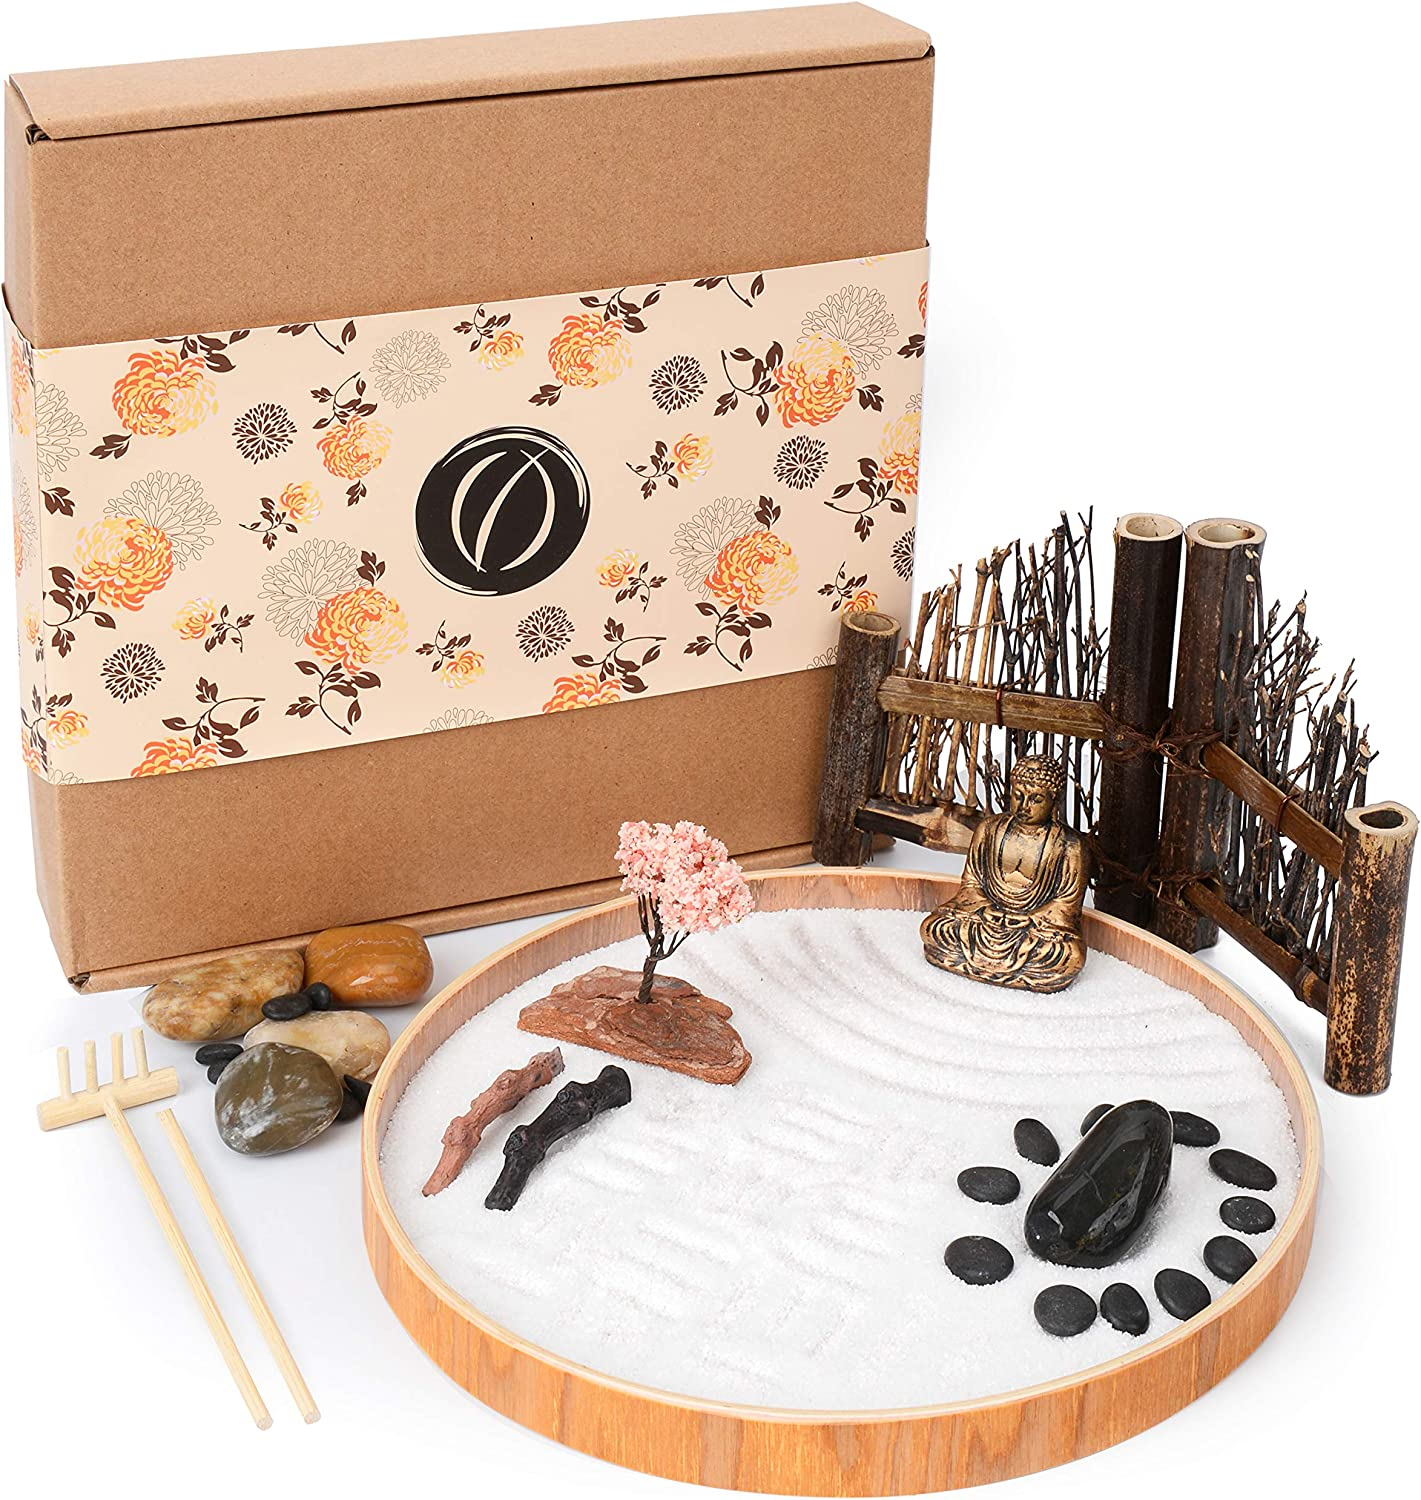 LotsOfZen Mini Zen Garden for Desk (9.5 Inch) — Desktop Zen Garden Kit with Round Sandbox, Miniature Buddha Statue, Wooden Fence, White Sand, Rake, and More Accessories — Great Spiritual Gift Idea